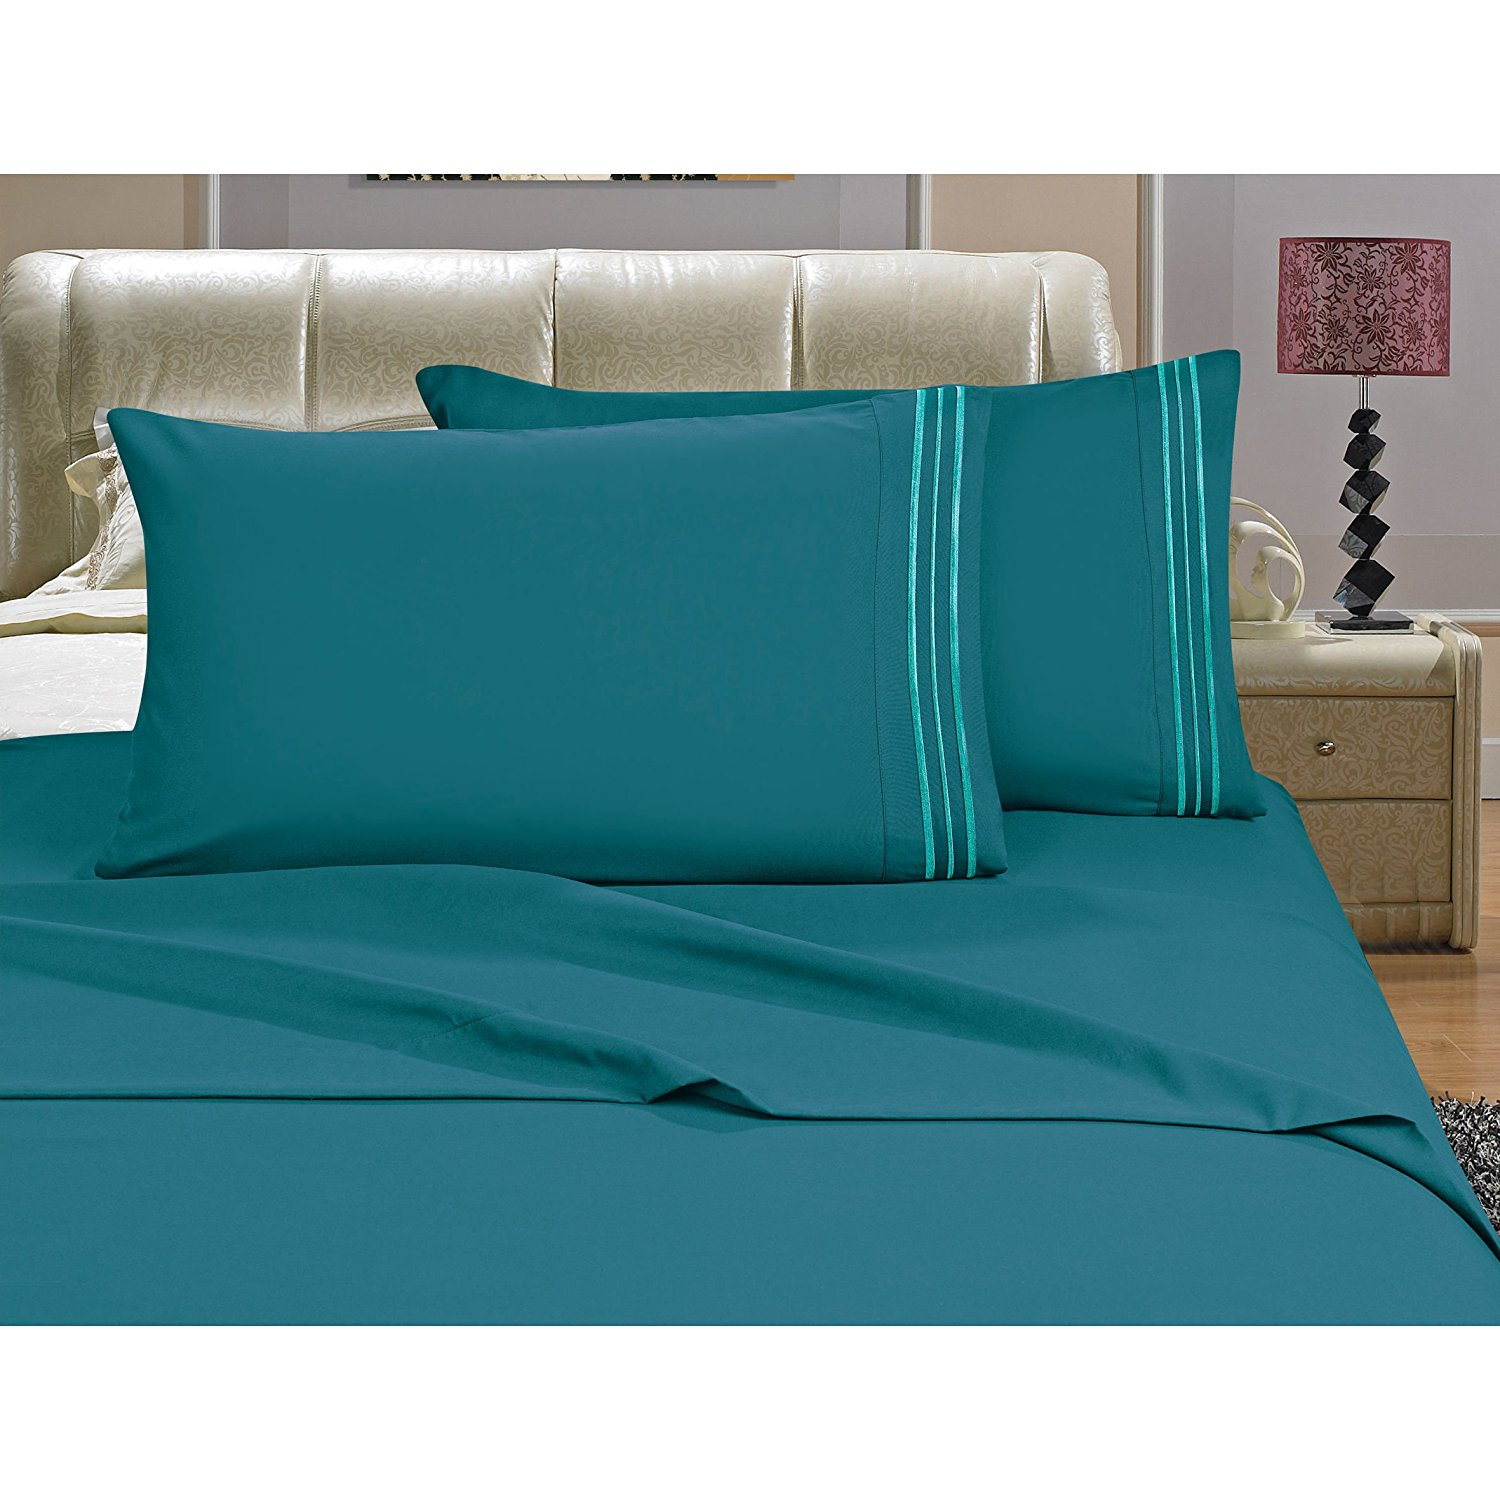 OSK 4 Piece Girls Turquoise Blue Embroidered Stripe Sheet Queen Set, Deep Blue Color Solid Pattern Design Kids Bedding, Luxurious Colorful Traditional Teen Themed, Polyester Microfiber